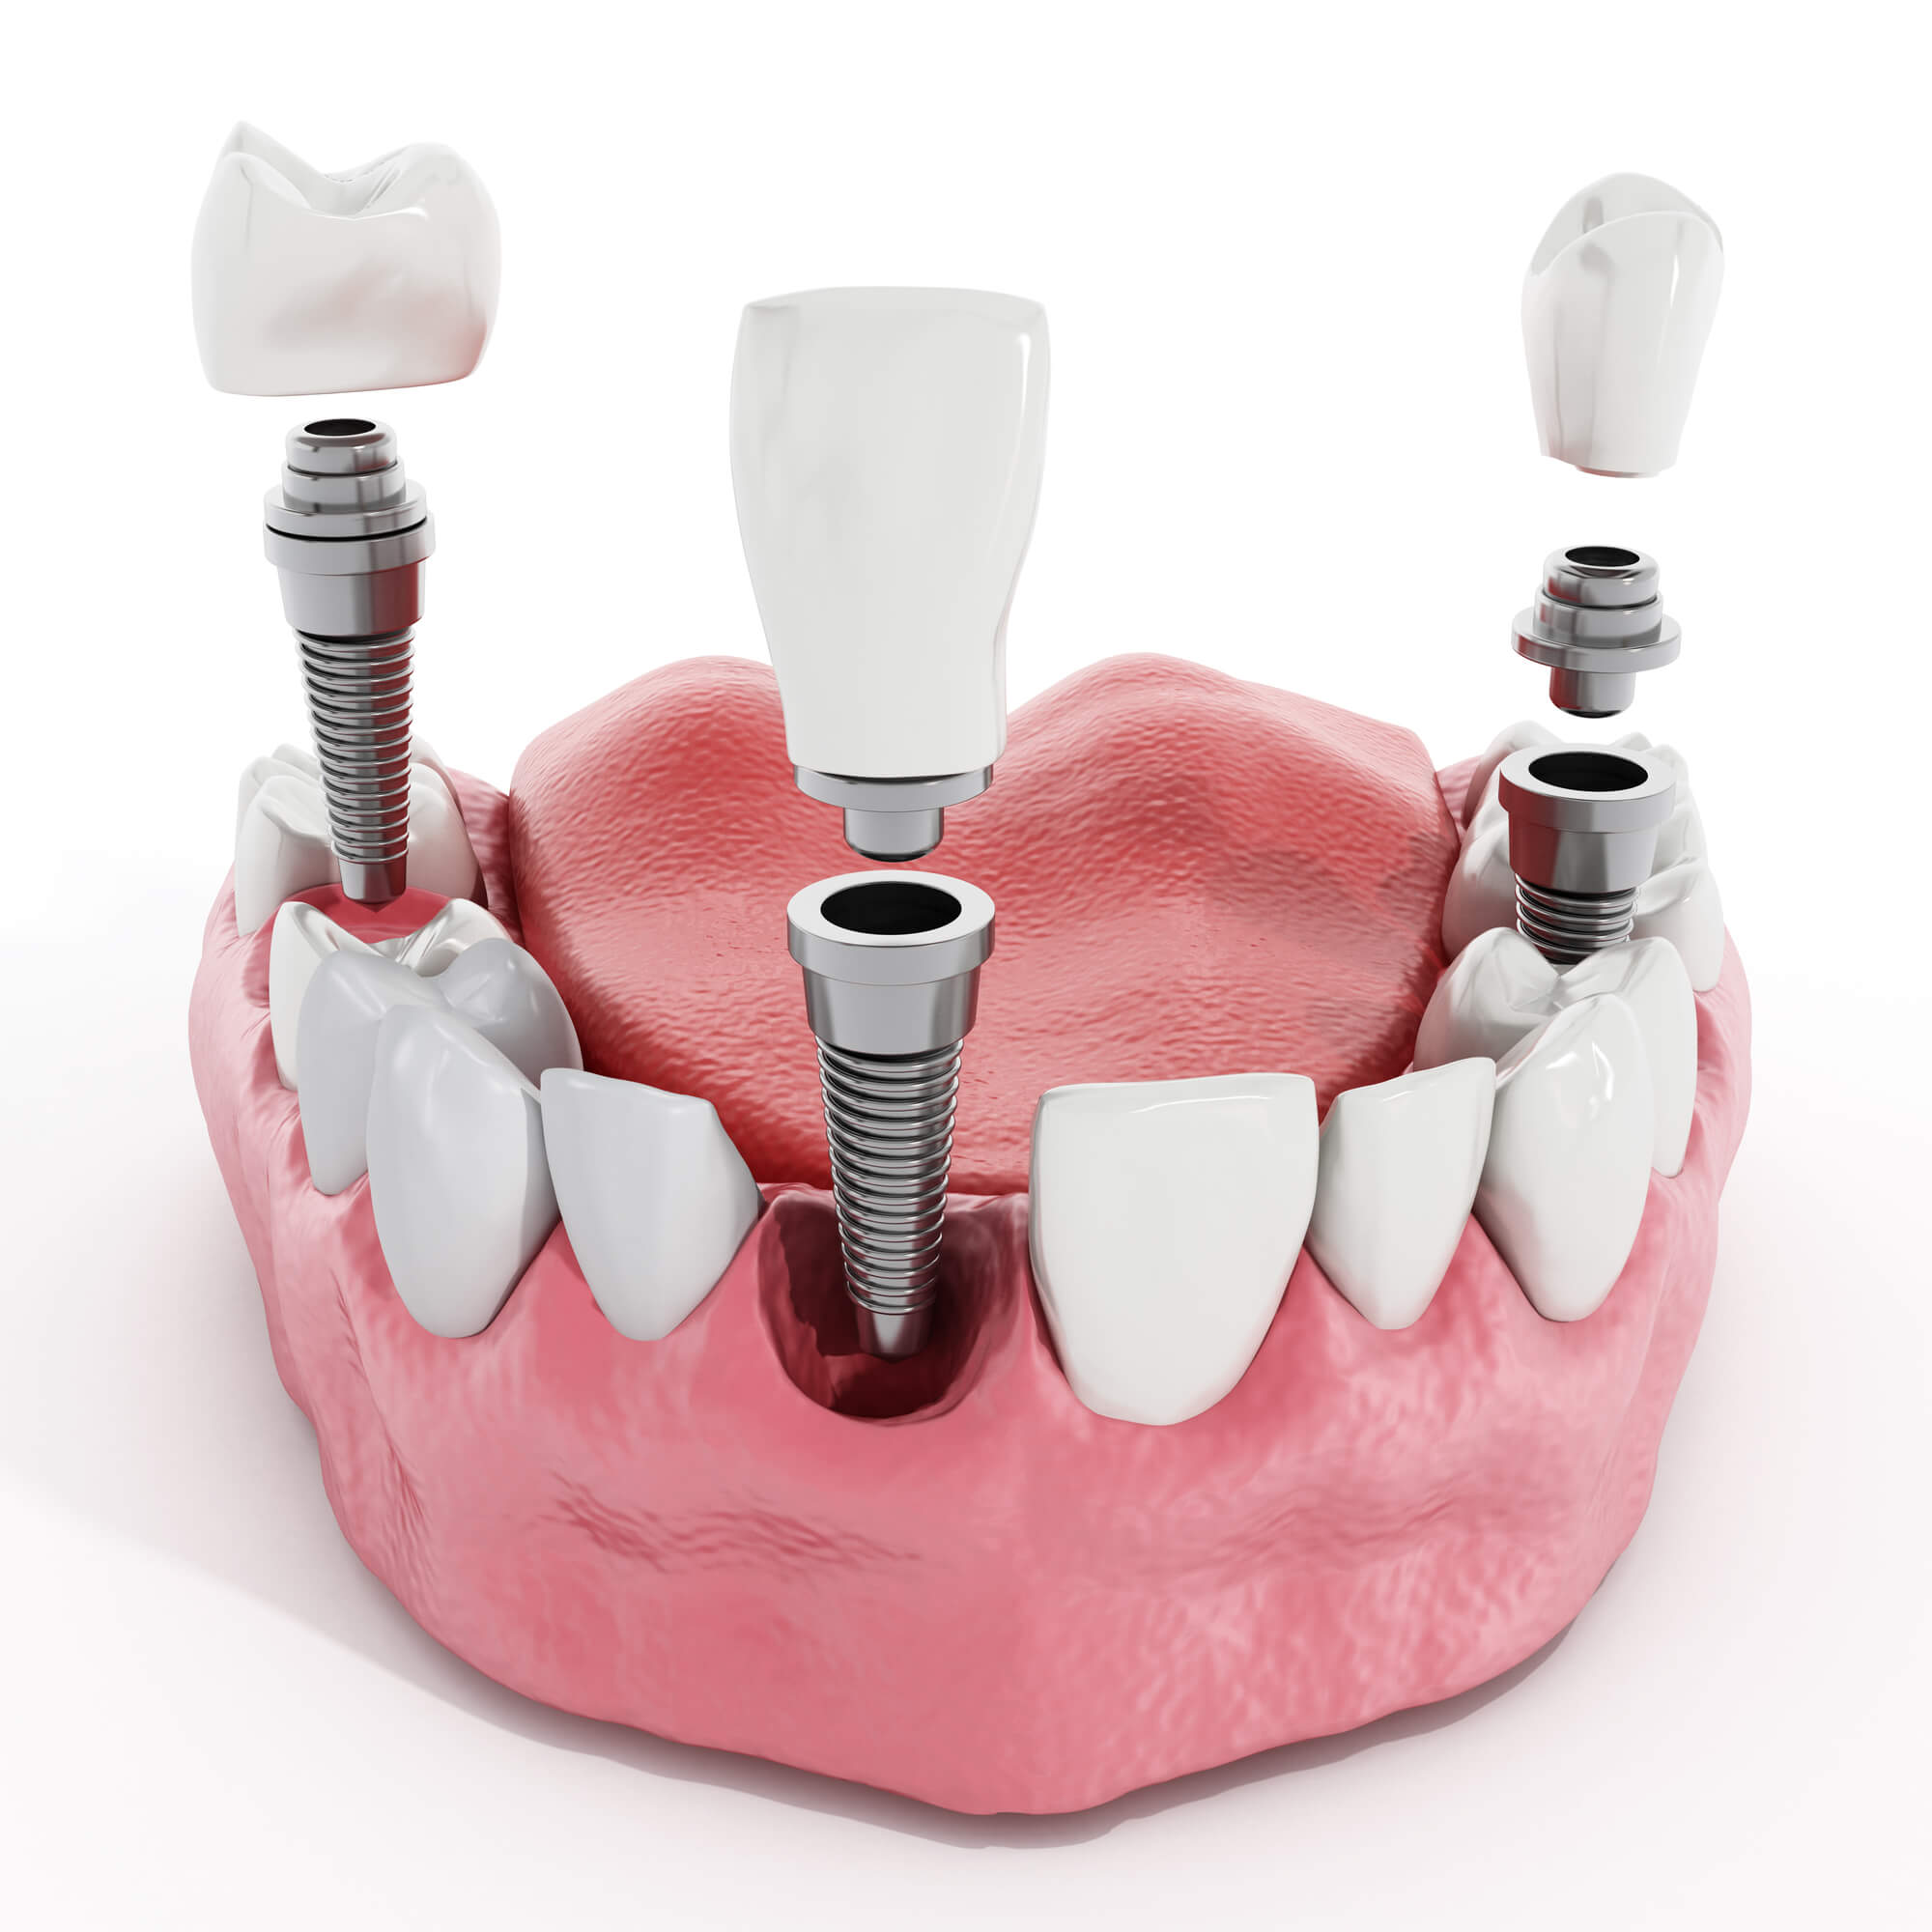 Where to get Dental implants coral springs?